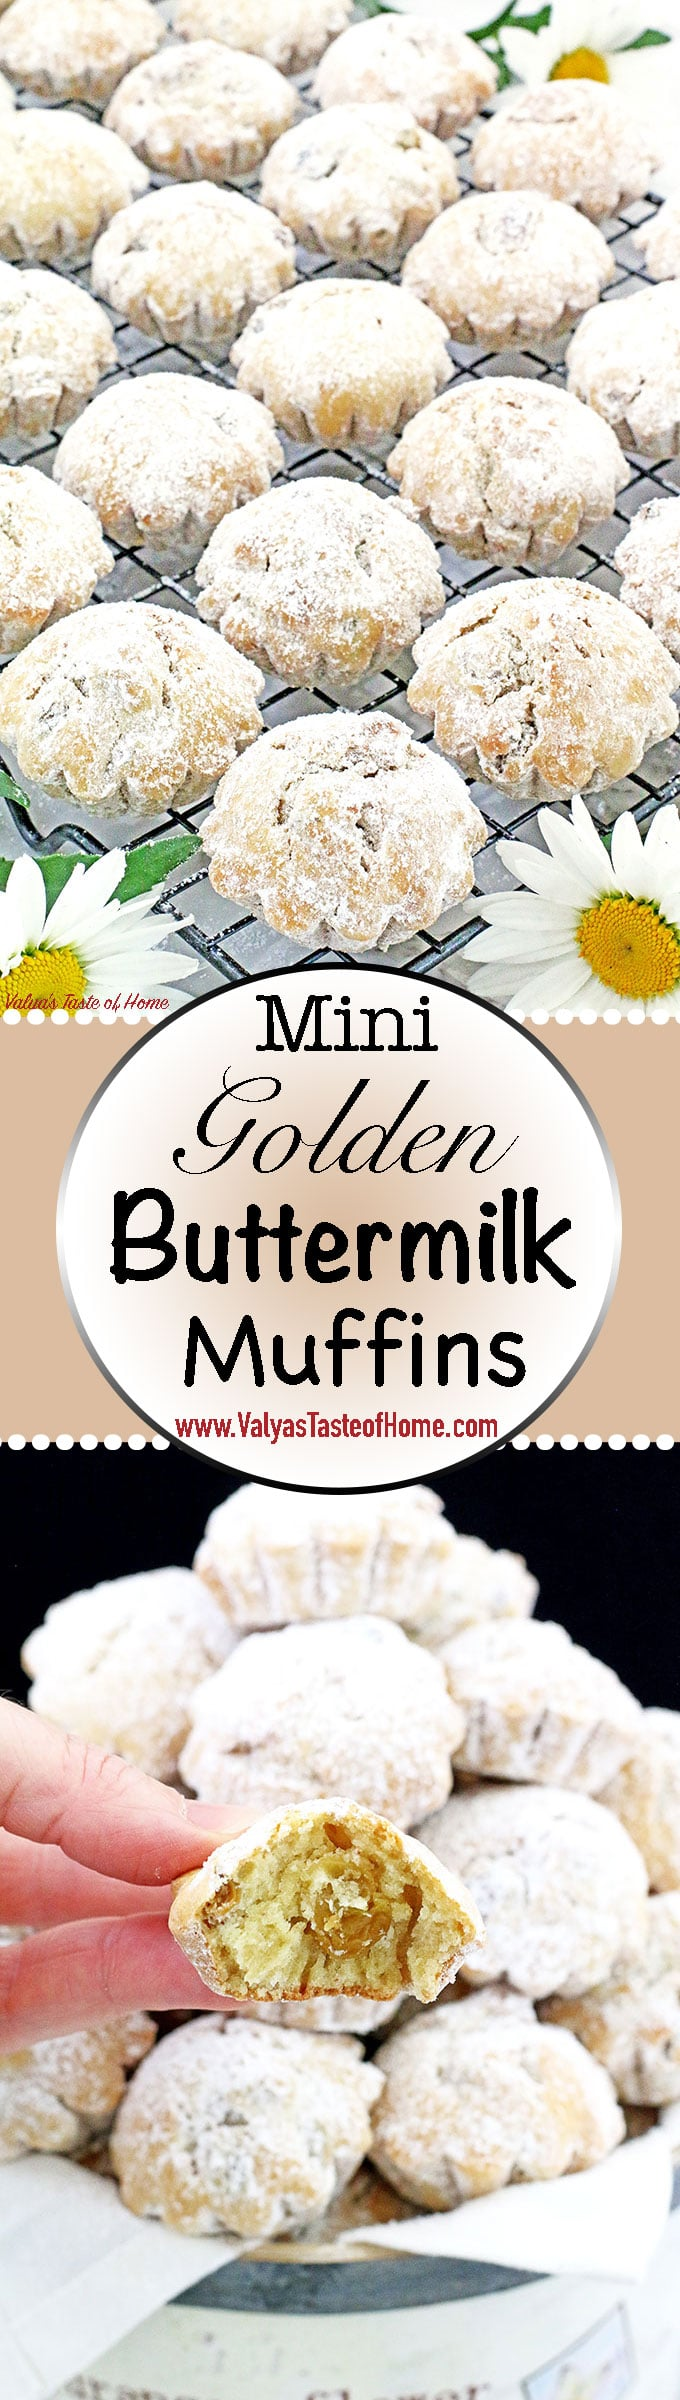 These Mini Golden Buttermilk Muffins become a quick favorite to those who try them as well. Because of its size and portion kids really love these muffins, and nothing goes to waste. They enjoy every crumb of it. These mini Goldie's great for any occasion and even are a great addition to a wedding or any dessert plate.